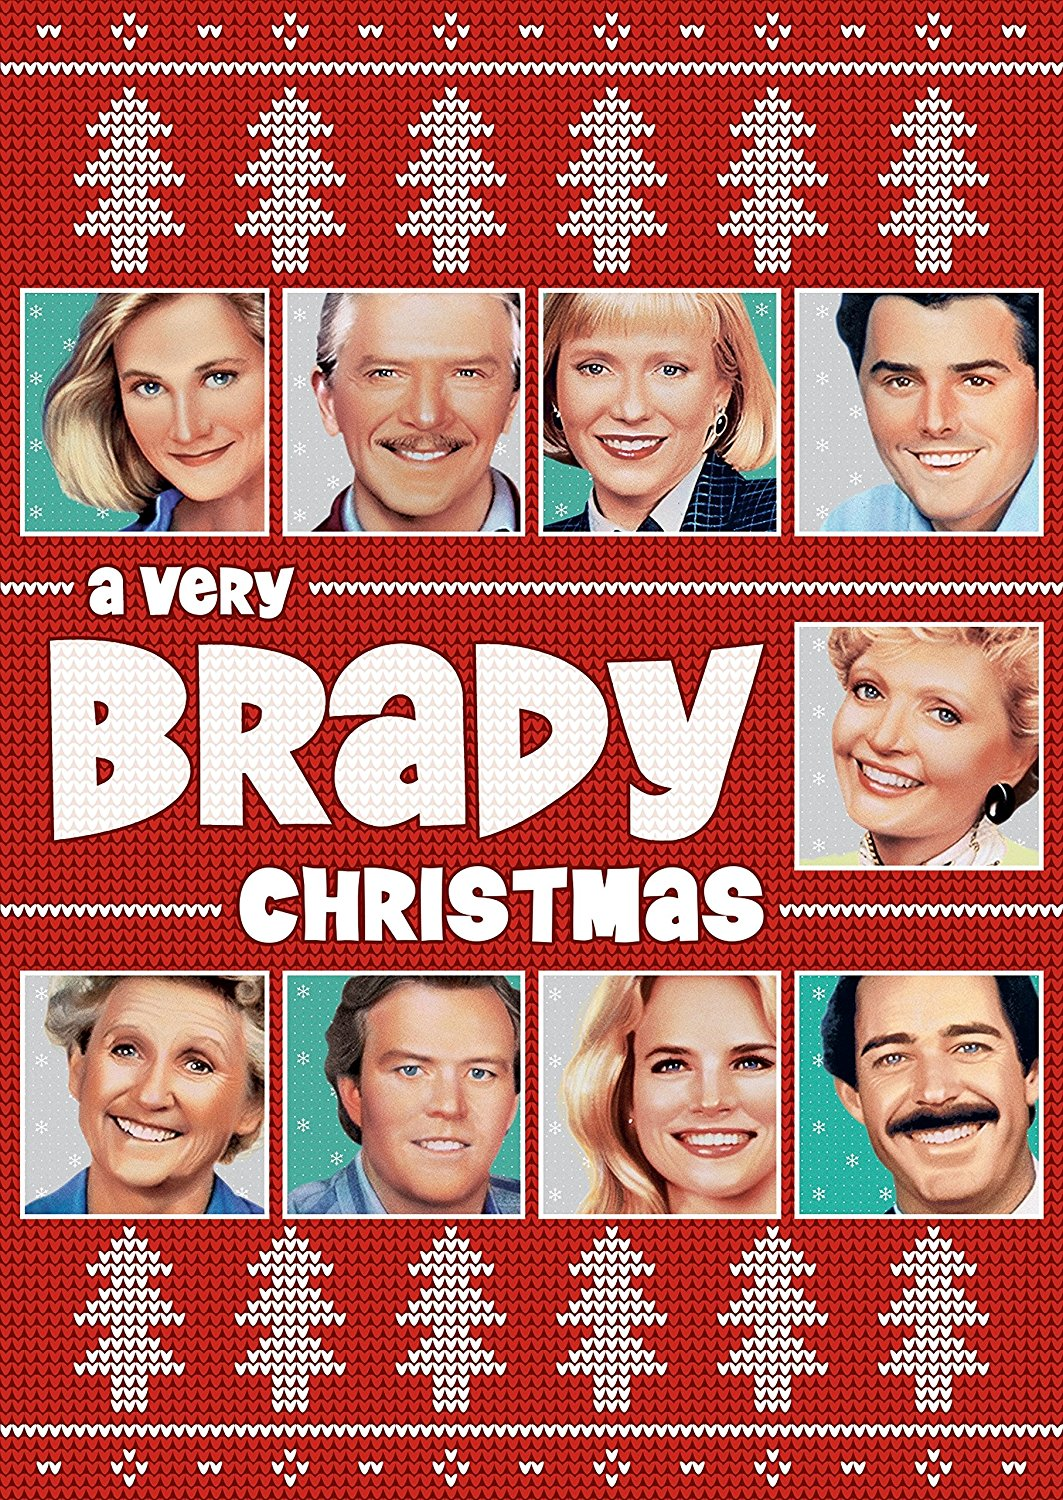 A VERY BRADY CHRISTMAS (CBS-TVM 12/18/88)